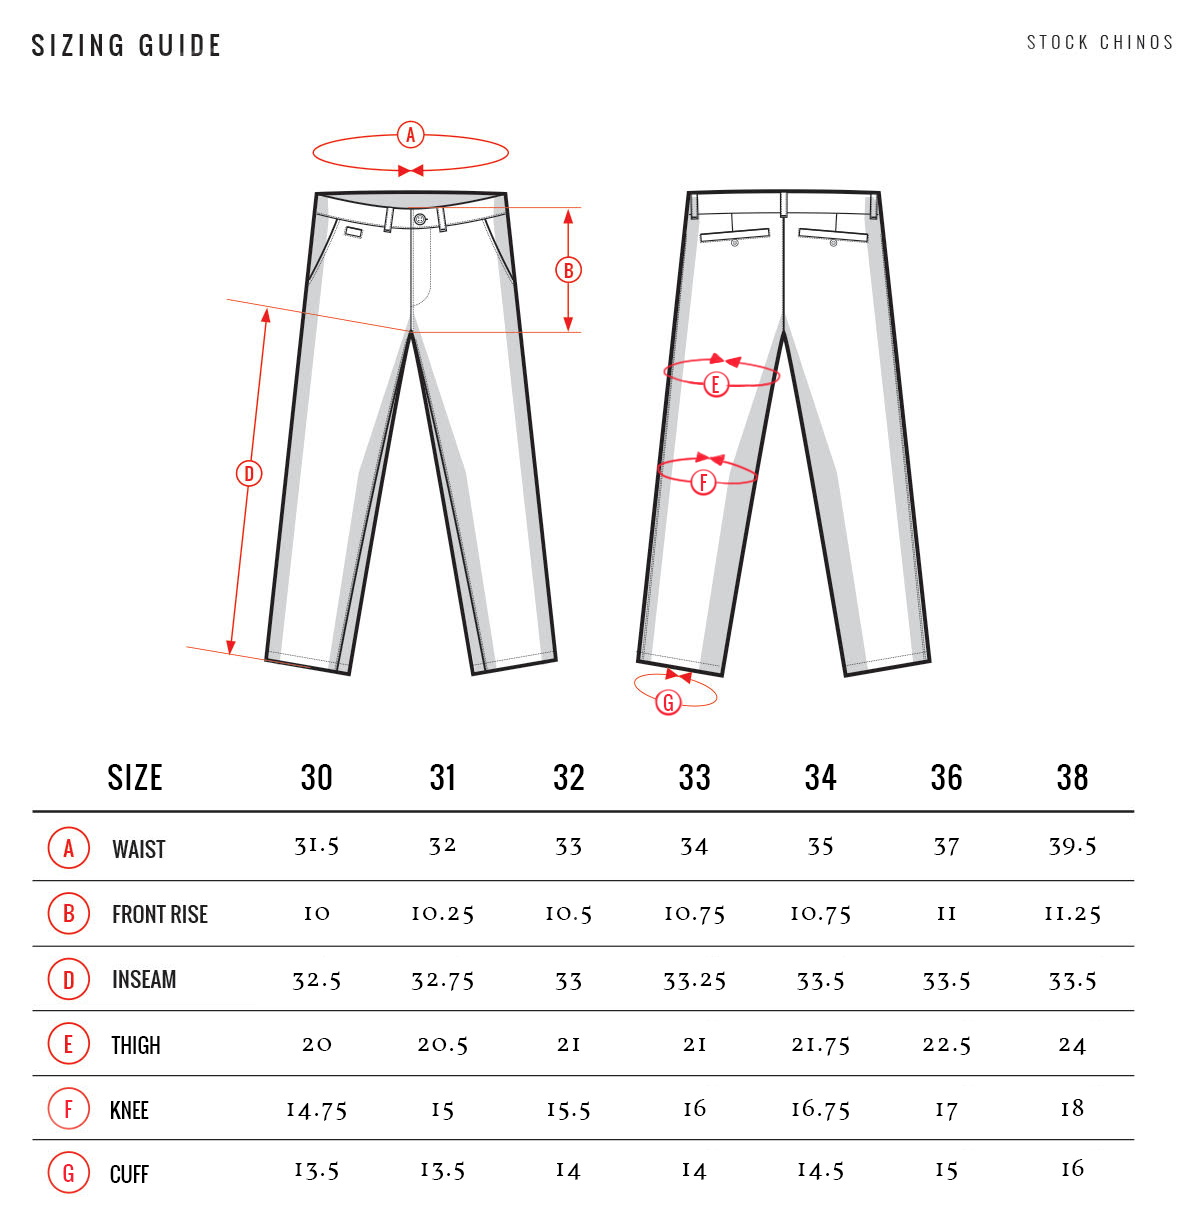 Stock Chinos - Made in Chicago, USA